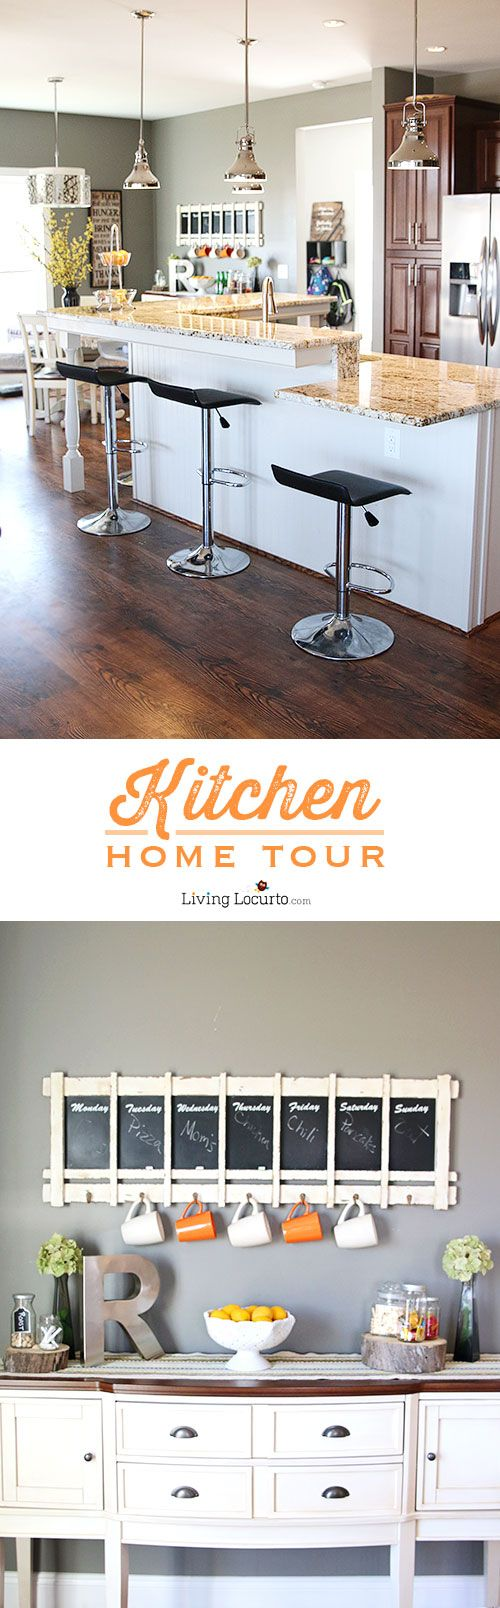 best kitchen images on pinterest kitchens home ideas and